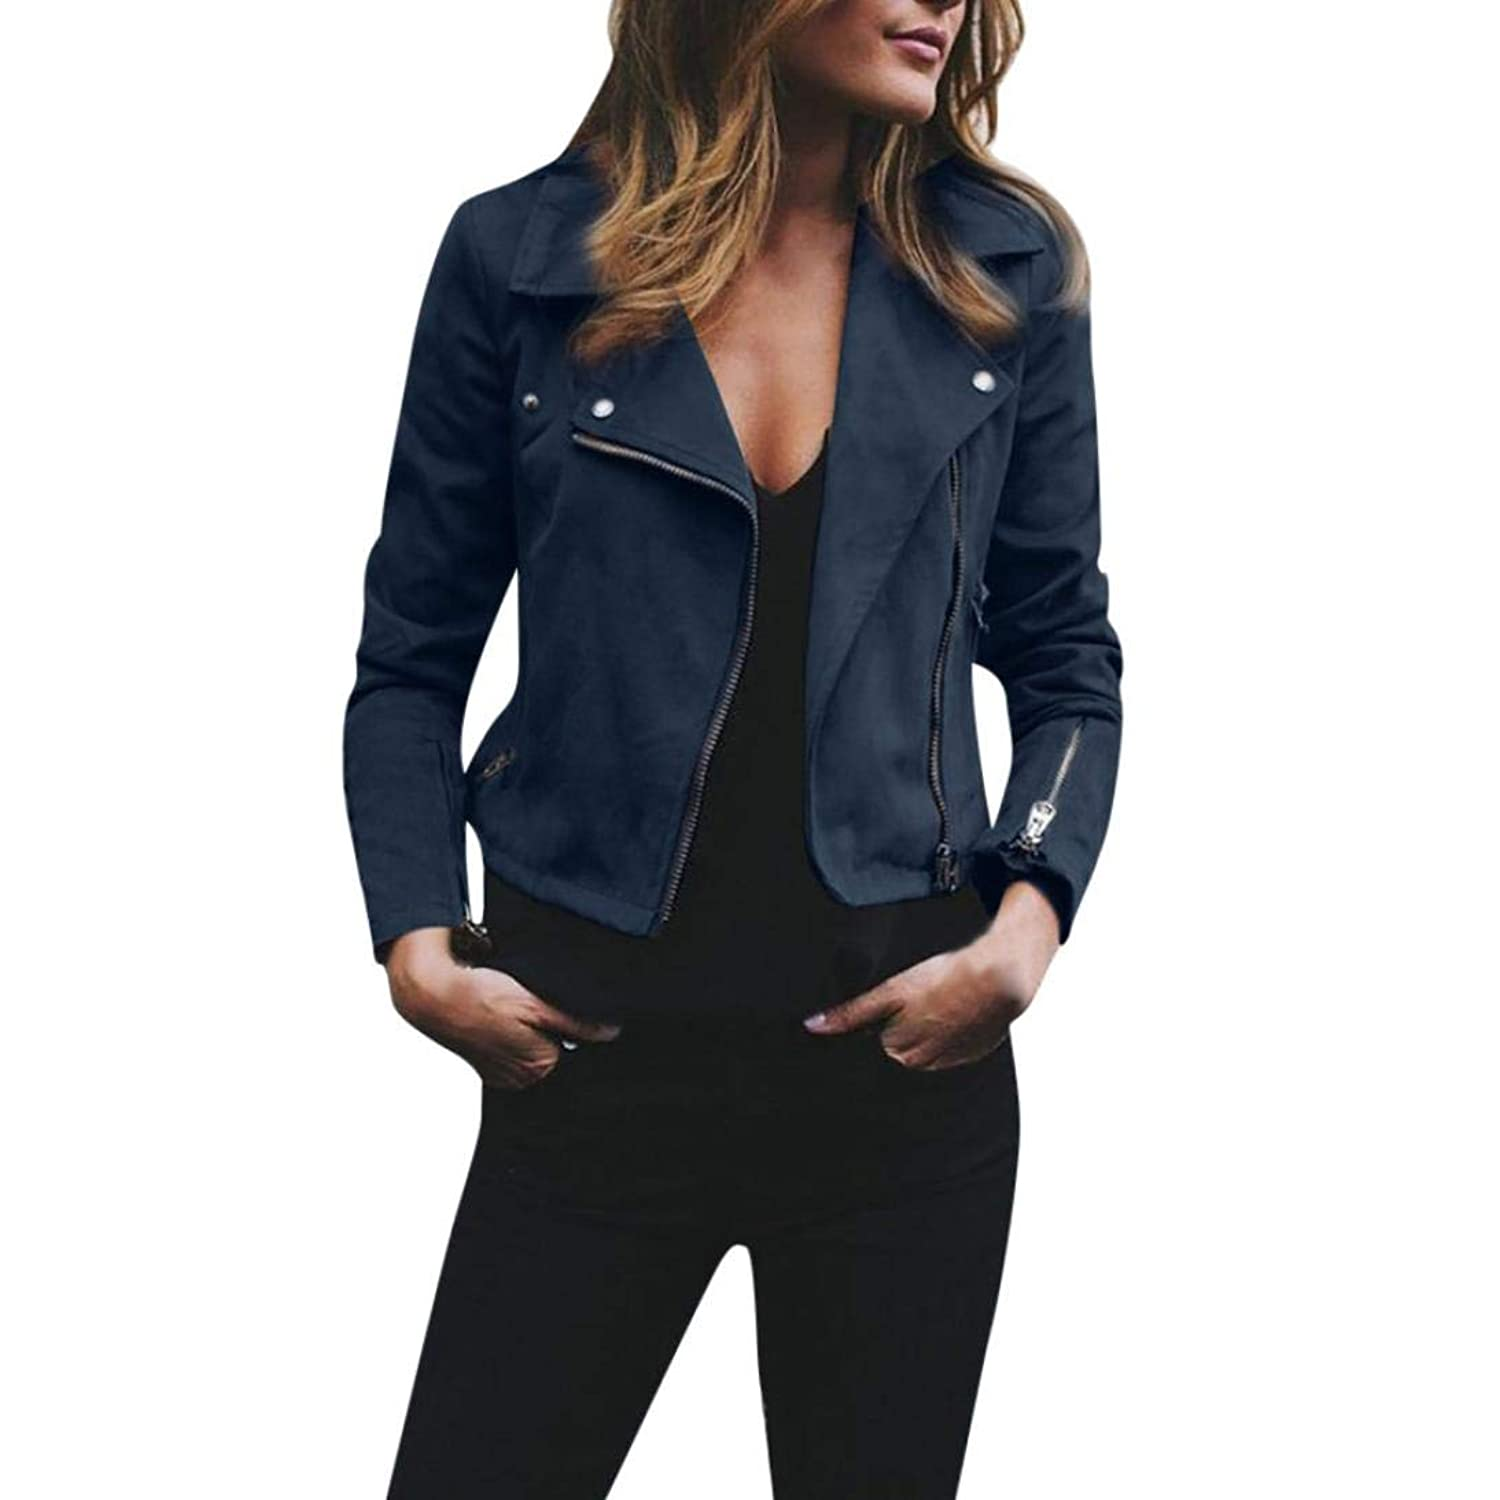 81e4363f ... suitable for multiple occasions. Suitable for occasions: daily, sports,  riding, gathering, shopping and so on. men coat jacket women jacket and  coat ...